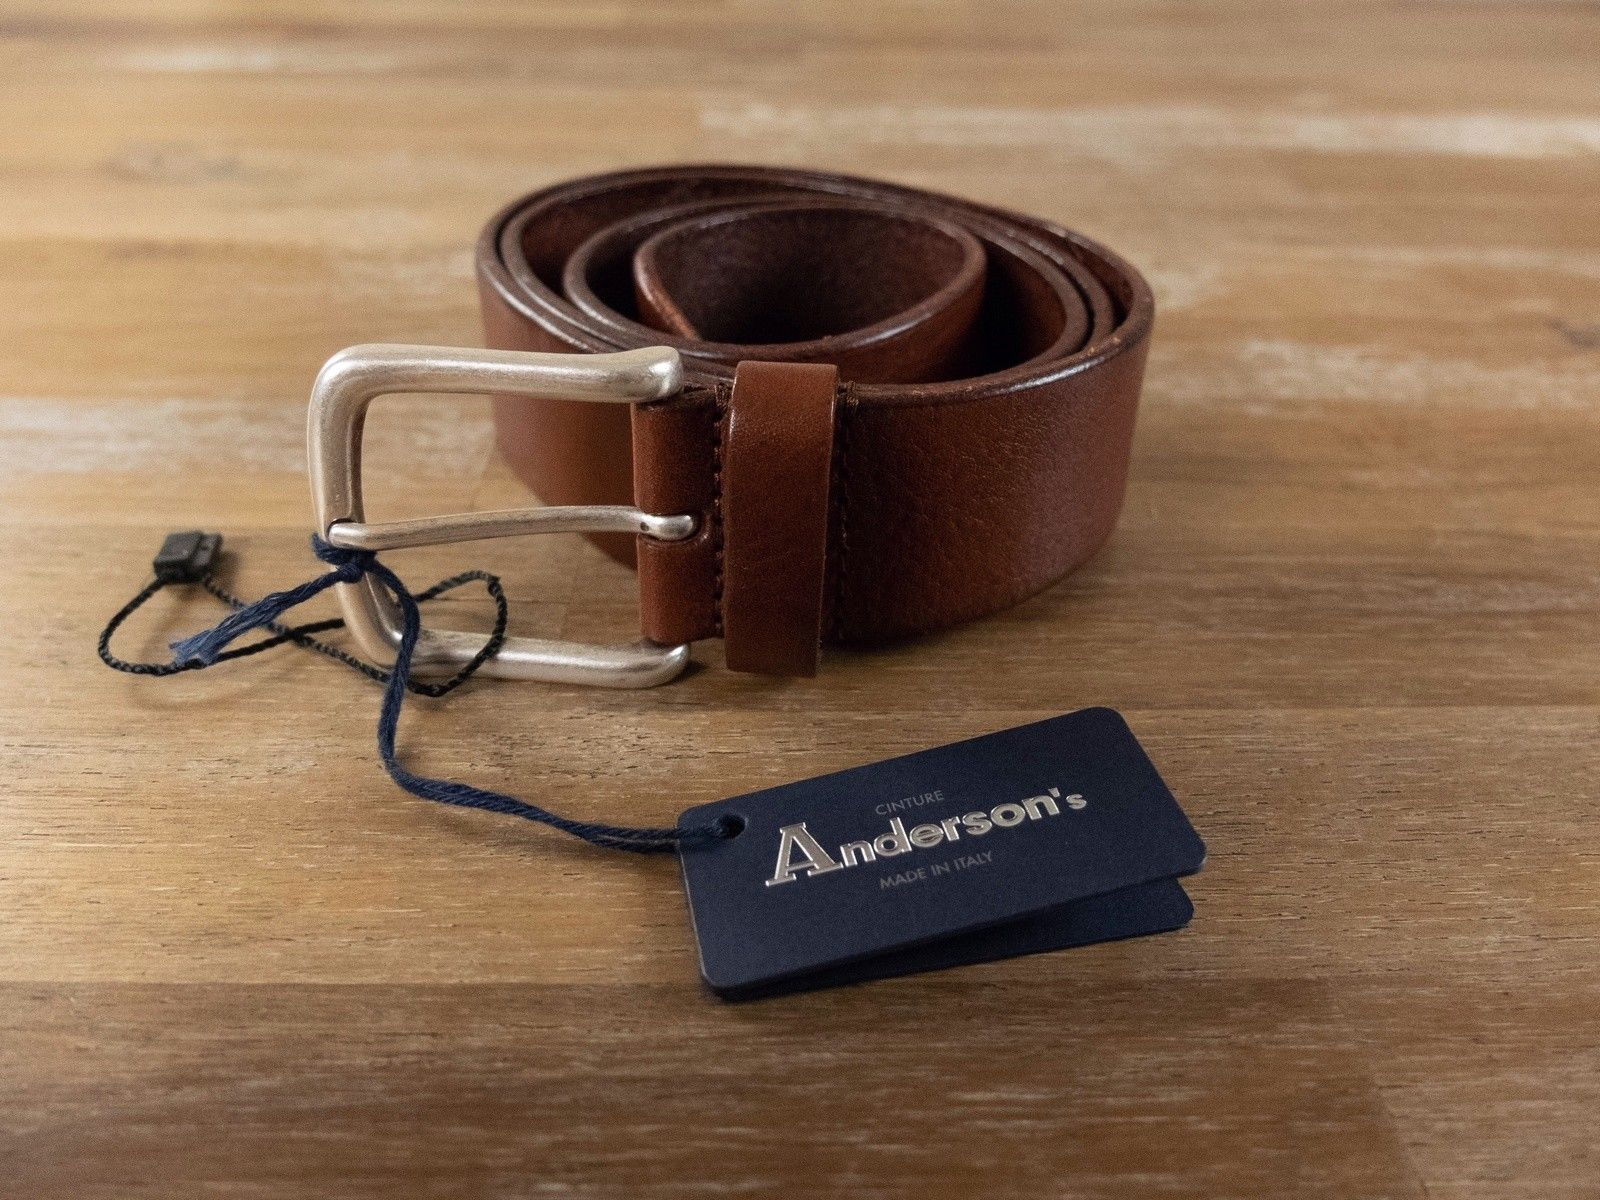 foto ufficiali 64e6a f0da4 ANDERSON'S Andersons tobacco brown leather belt authentic - Size 95 (fits  size 36 waist best) - NWT